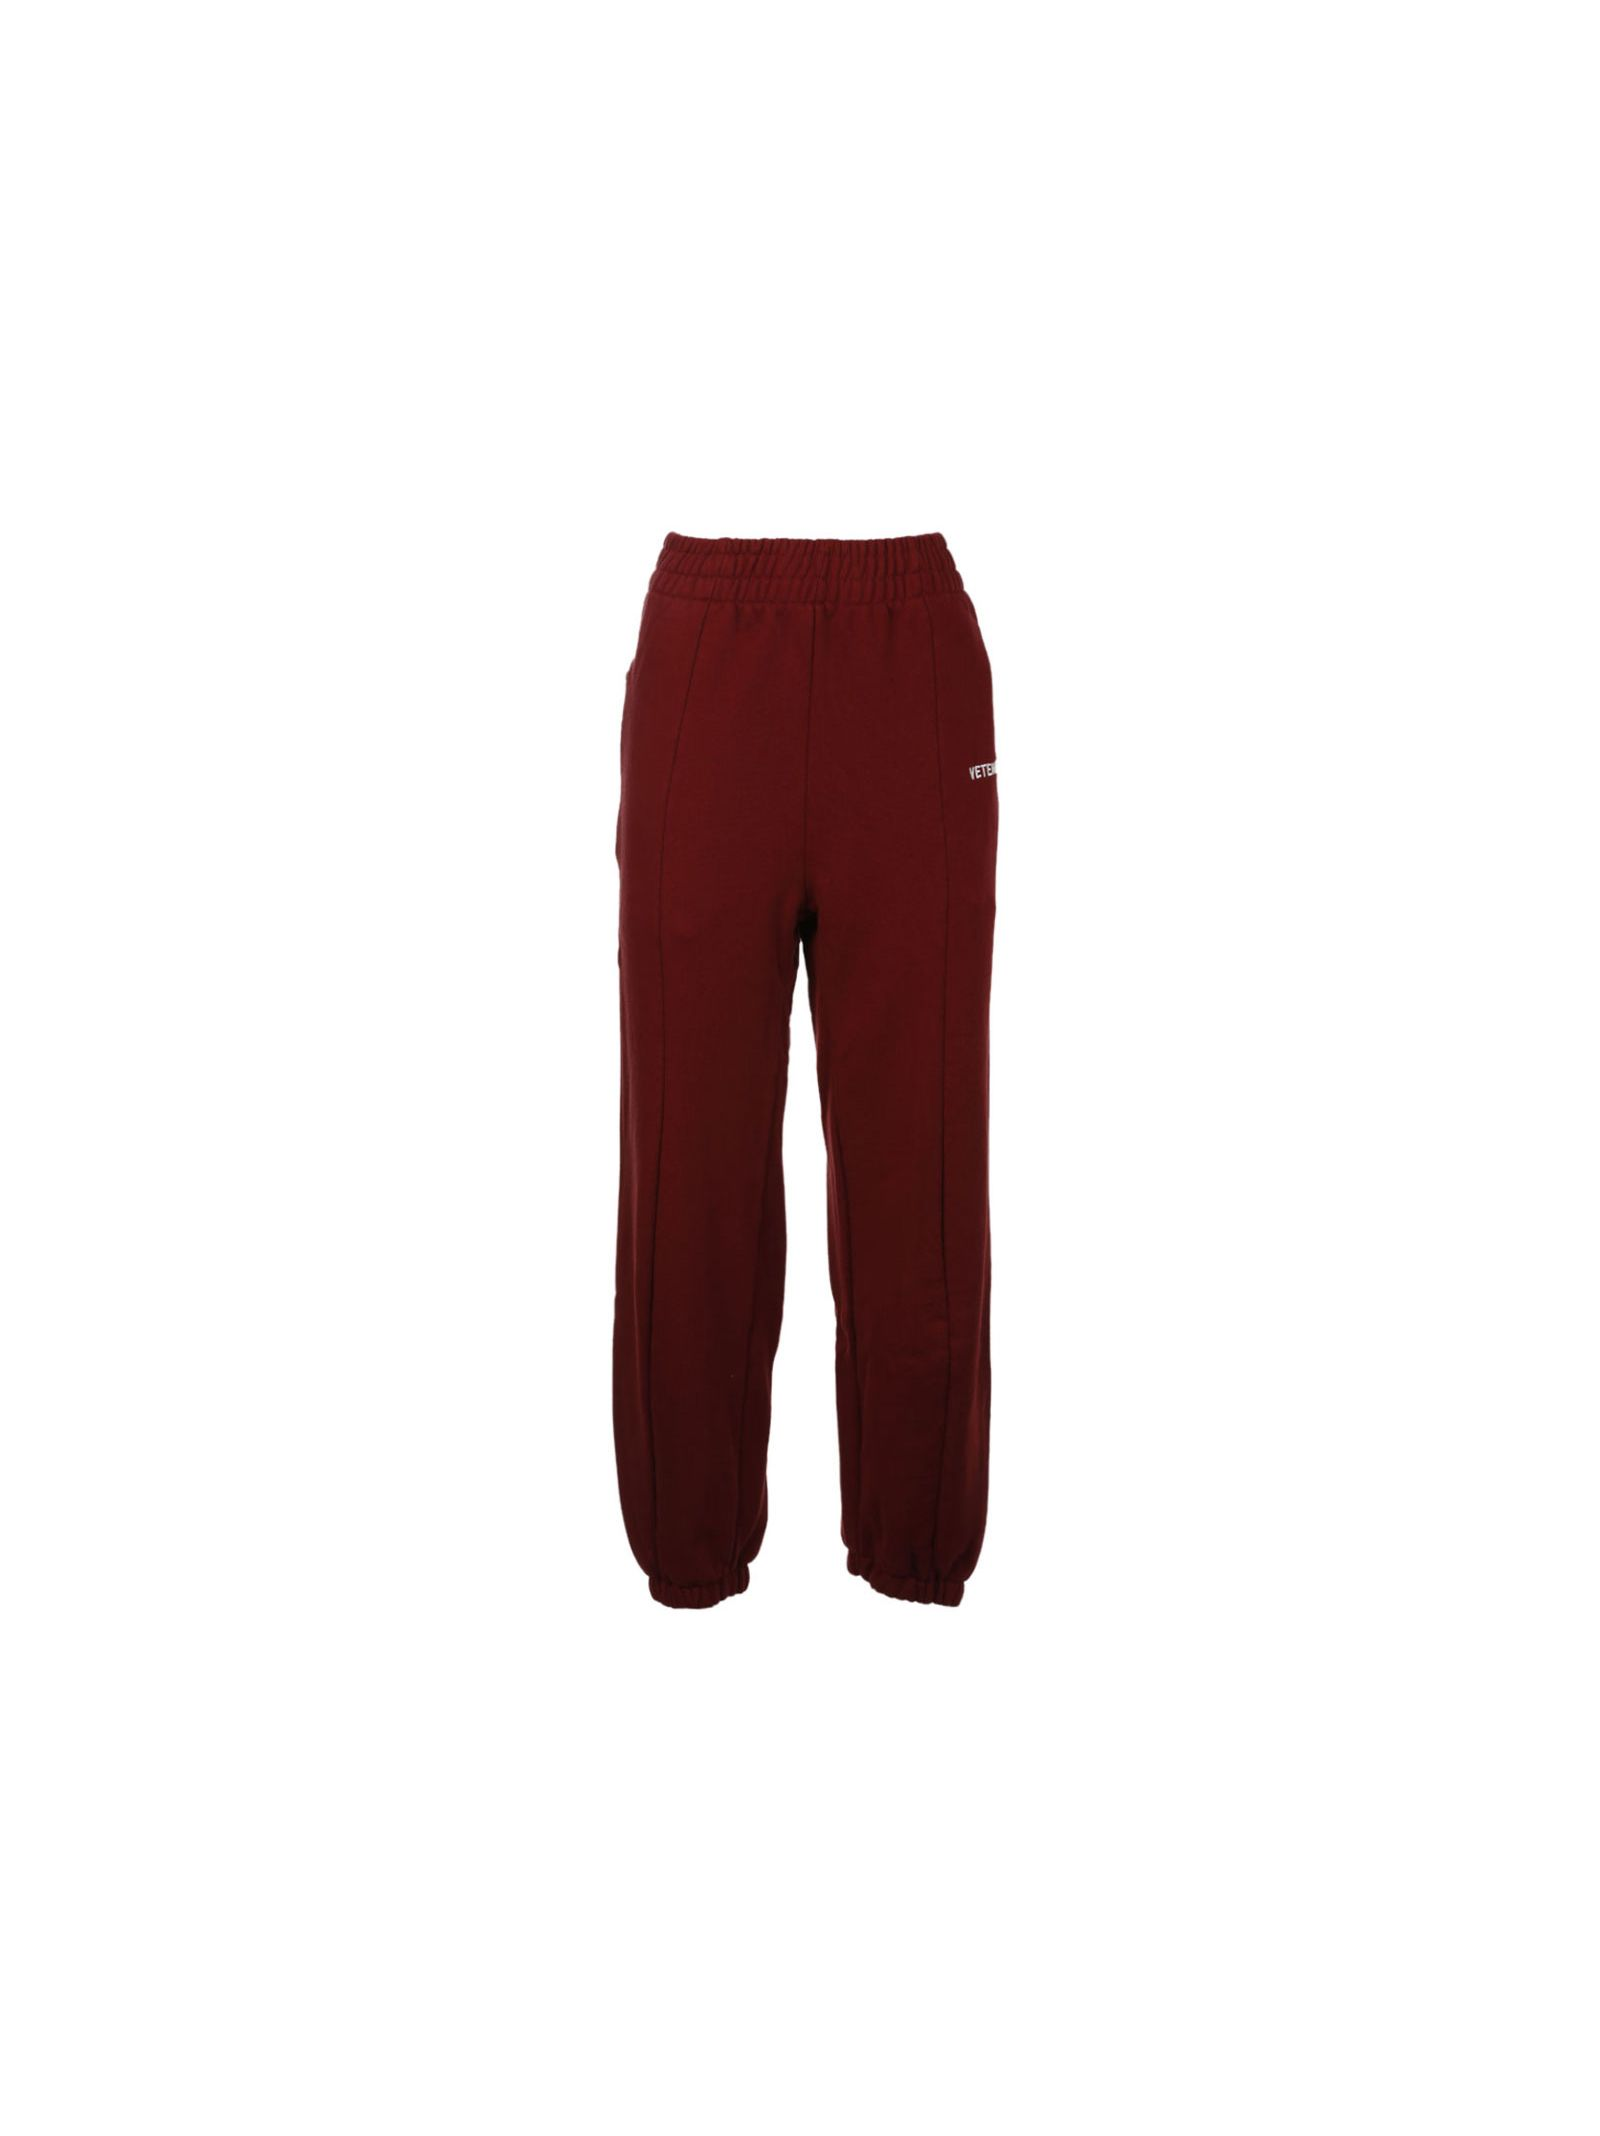 Biker Tapered Track Pants from Vetements: Burgundy Biker Tapered Track Pants with drawstring elasticated waistband, embroidered logo at front, zipped pockets at sides, closed cuffs, pulls on.